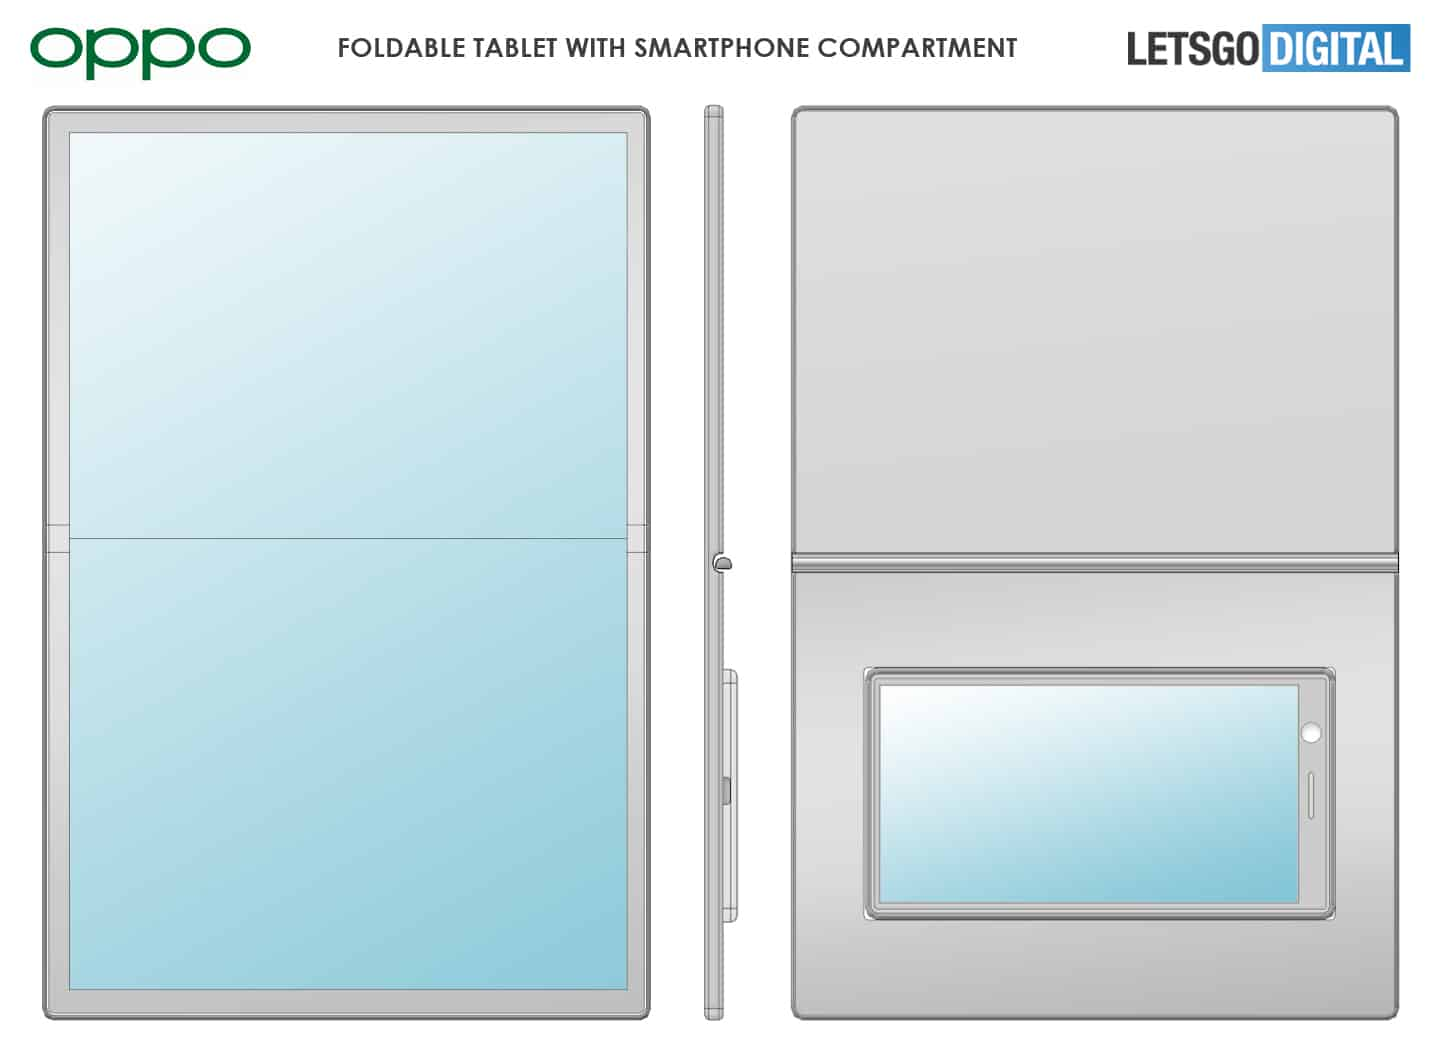 OPPO foldable tablet with smartphone dock patent 1